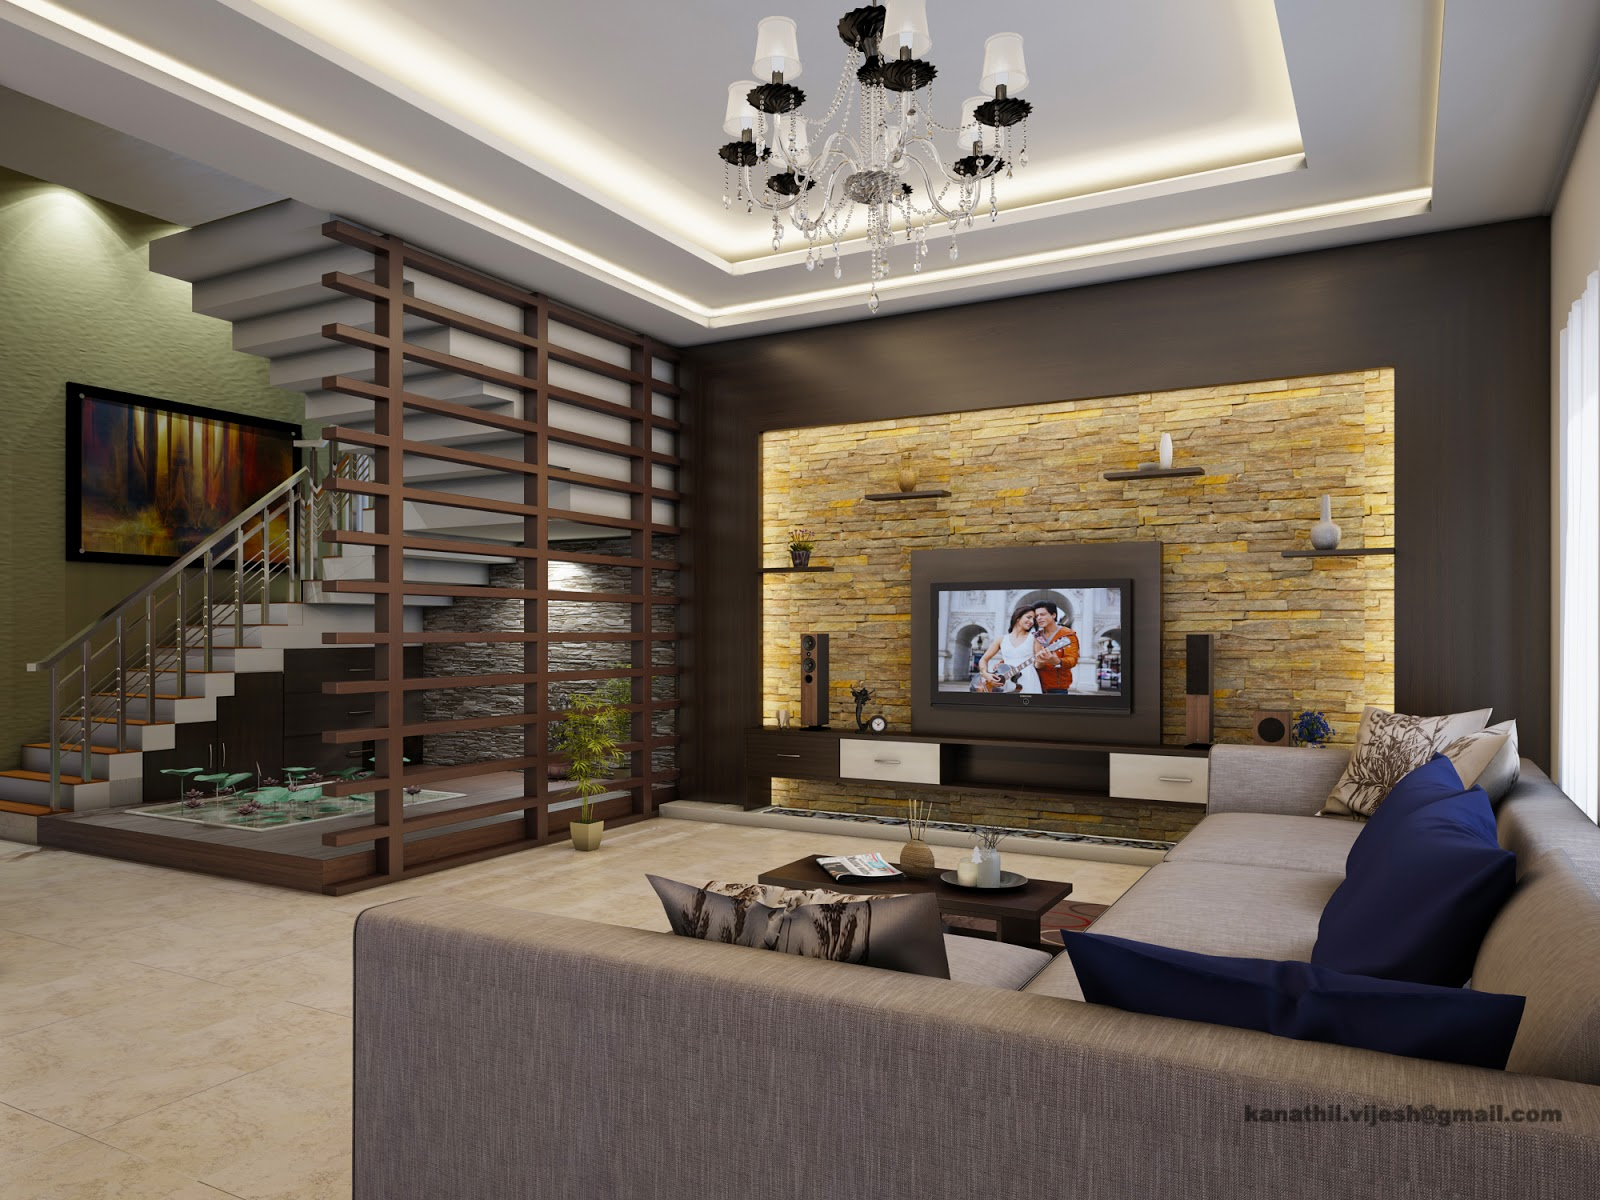 Viju 39 s world work for bonito designs bangalore for Interior designs images